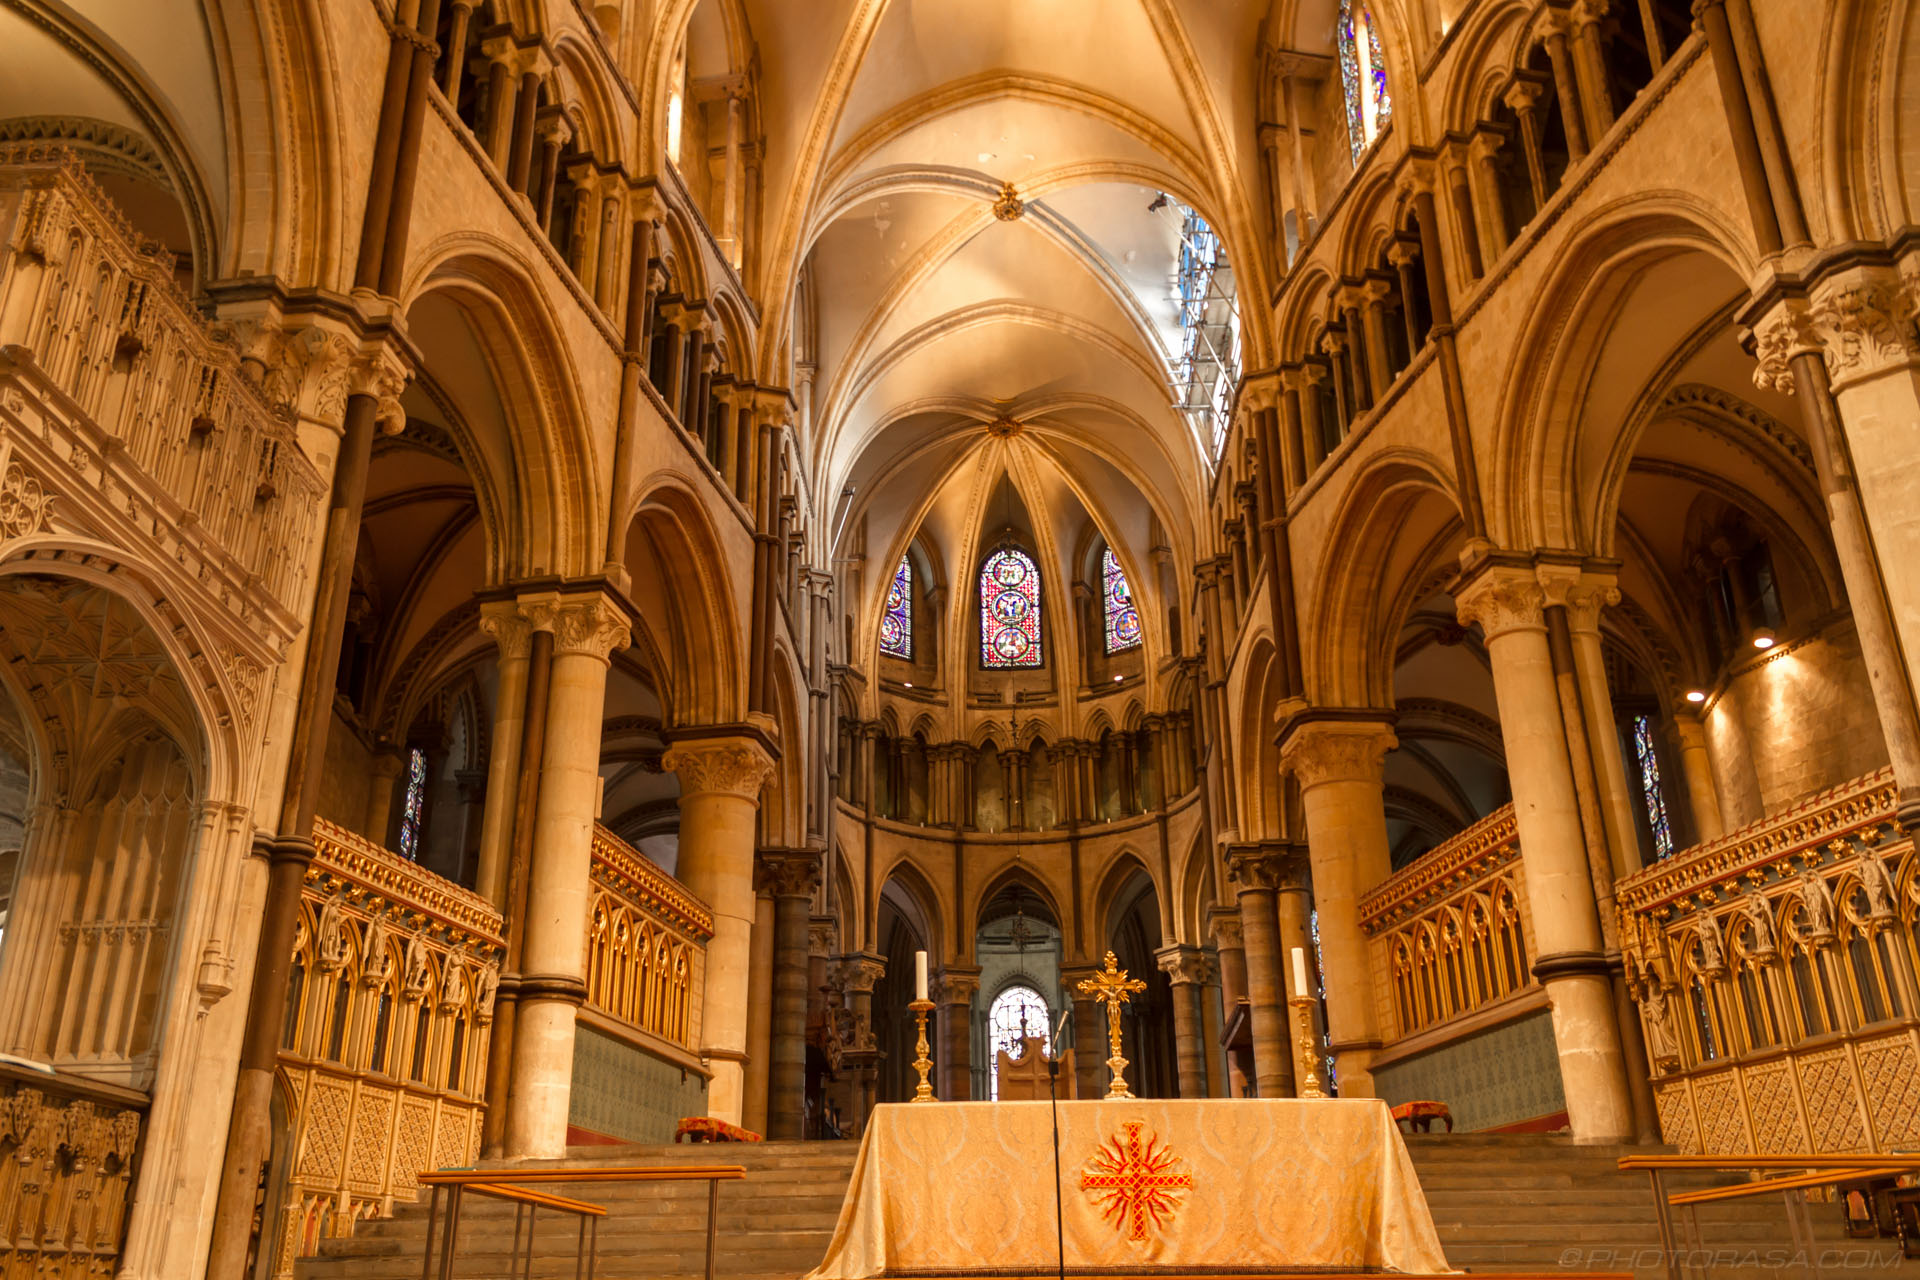 http://photorasa.com/canterbury-cathedral/the-high-alter-and-trinity-chapel/